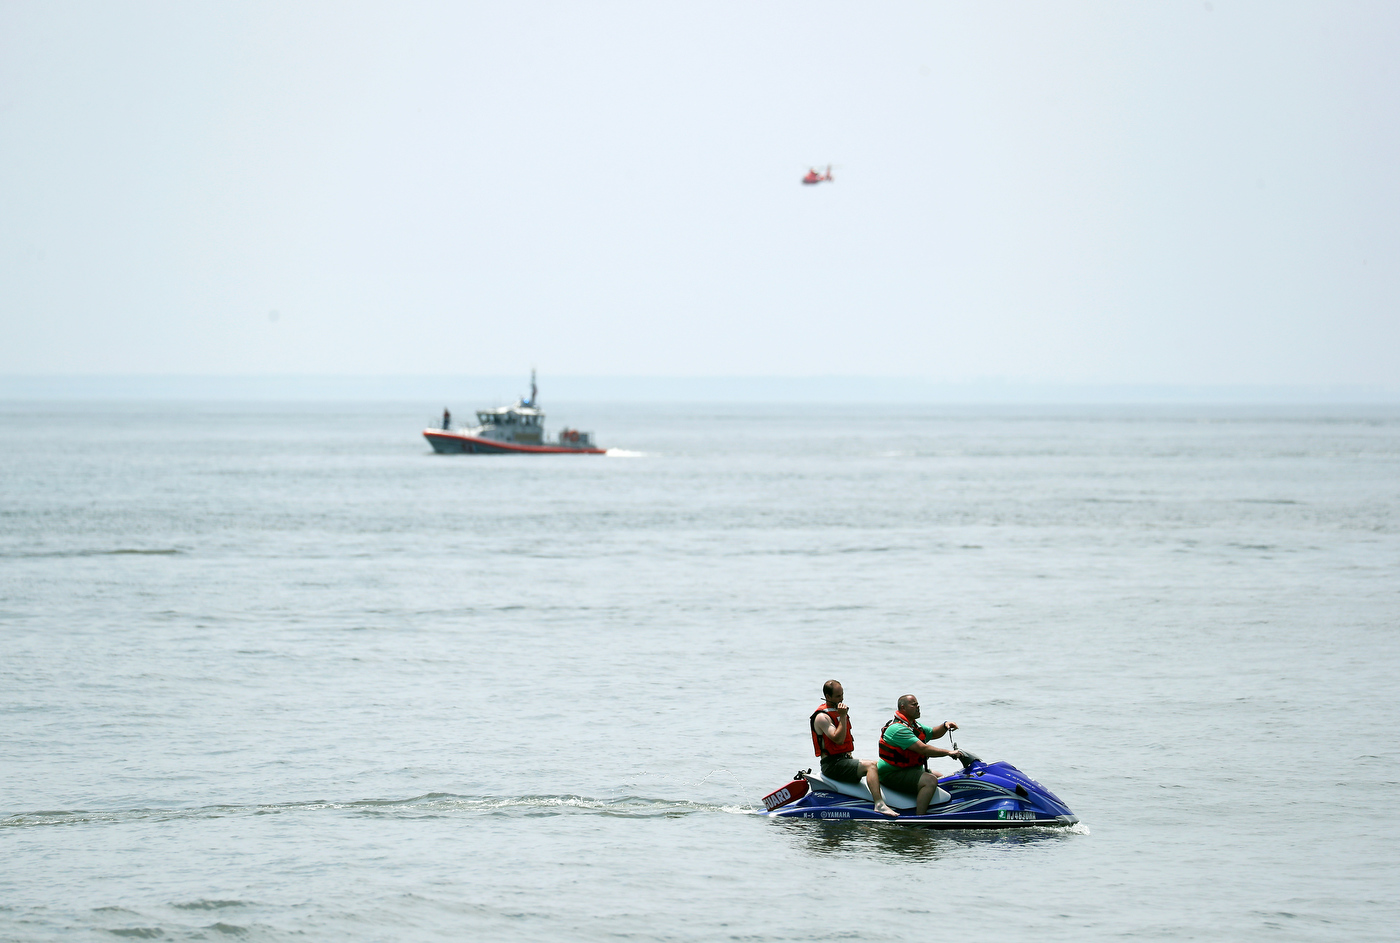 Witnesses saw doomed plane flying low, diving before plunging into the ocean, killing the pilot